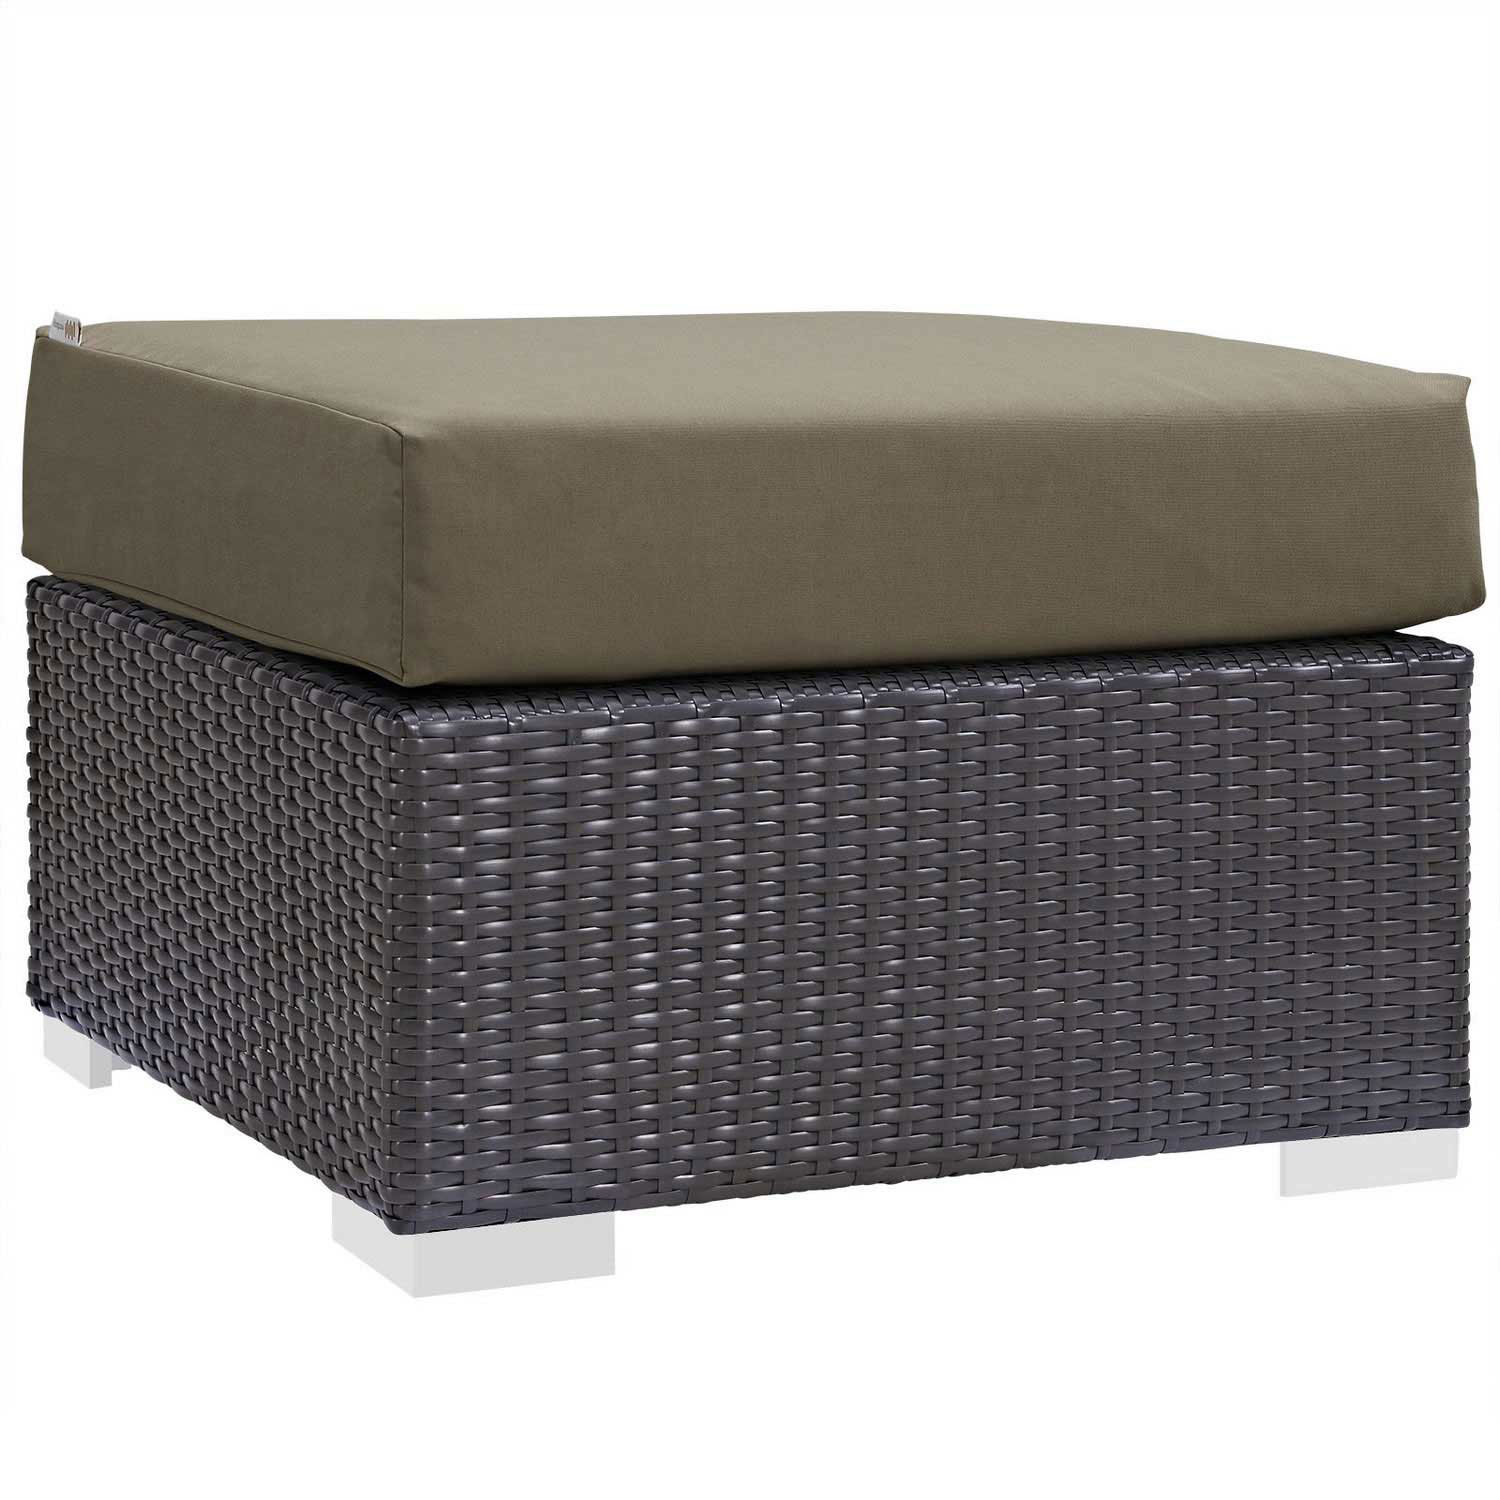 Modway Convene Outdoor Patio Fabric Square Ottoman - Espresso Mocha